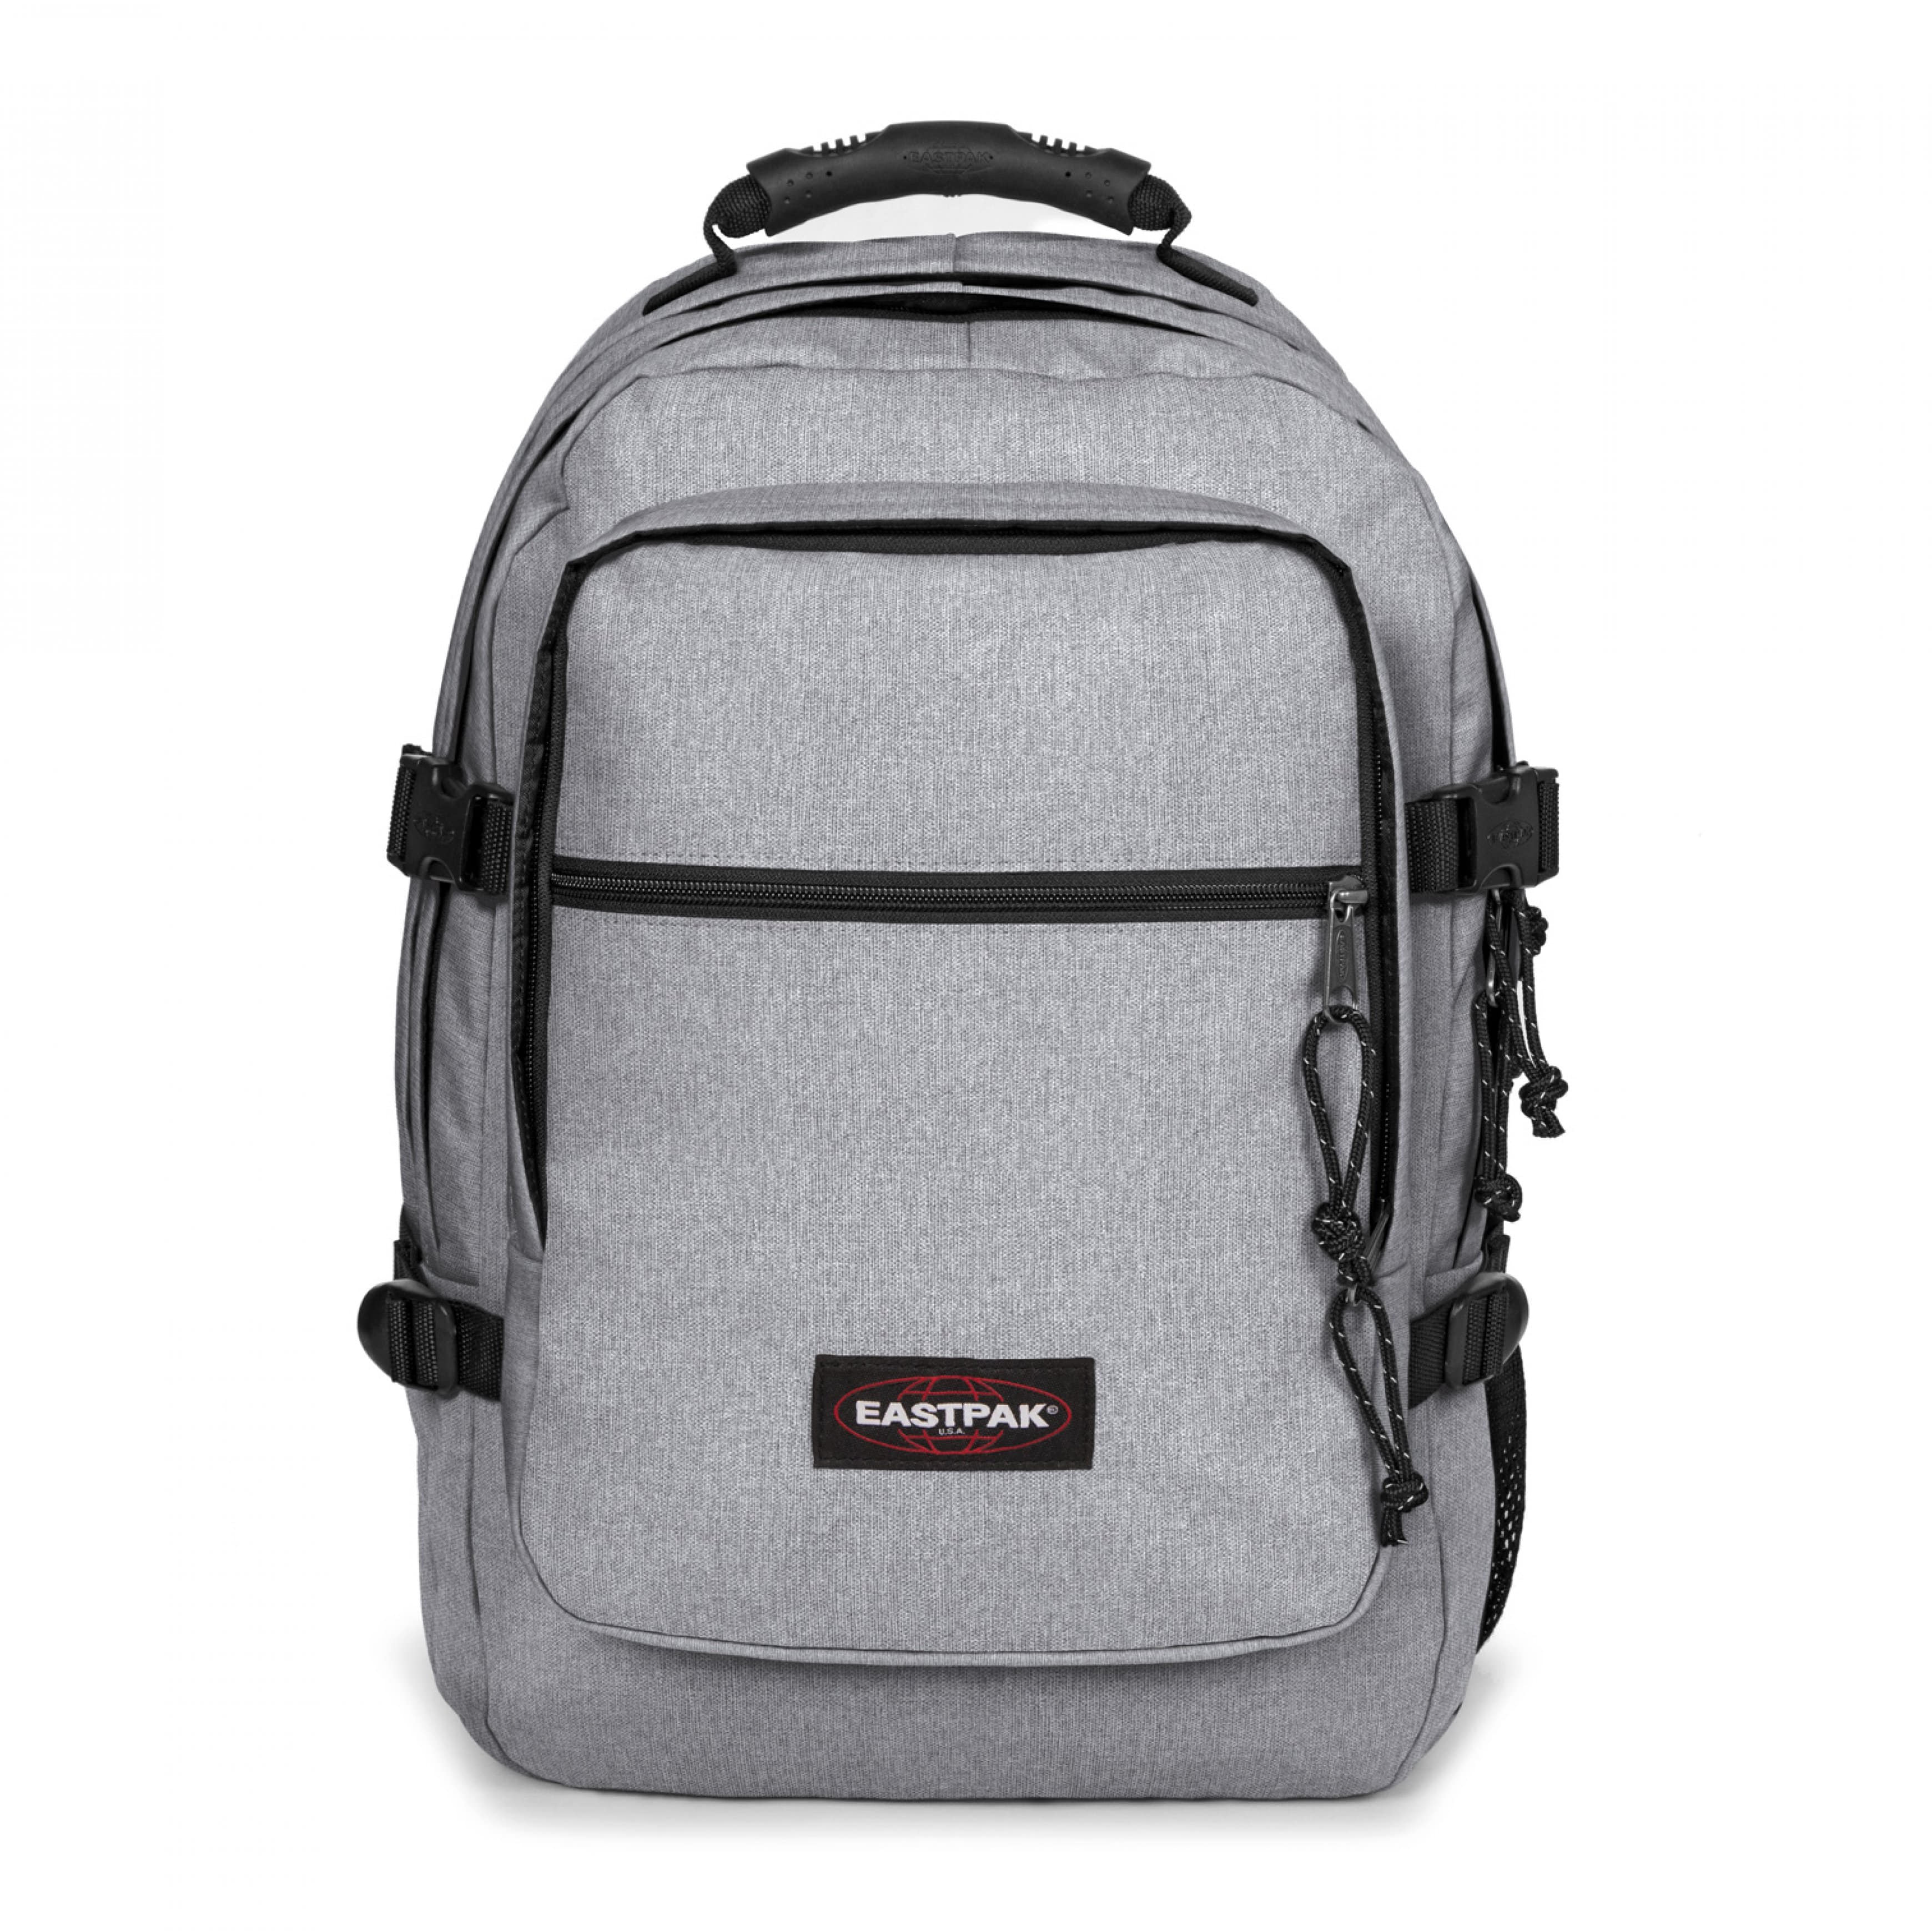 [EASTPAK] AUTHENTIC 백팩 울프 EKABA13 363